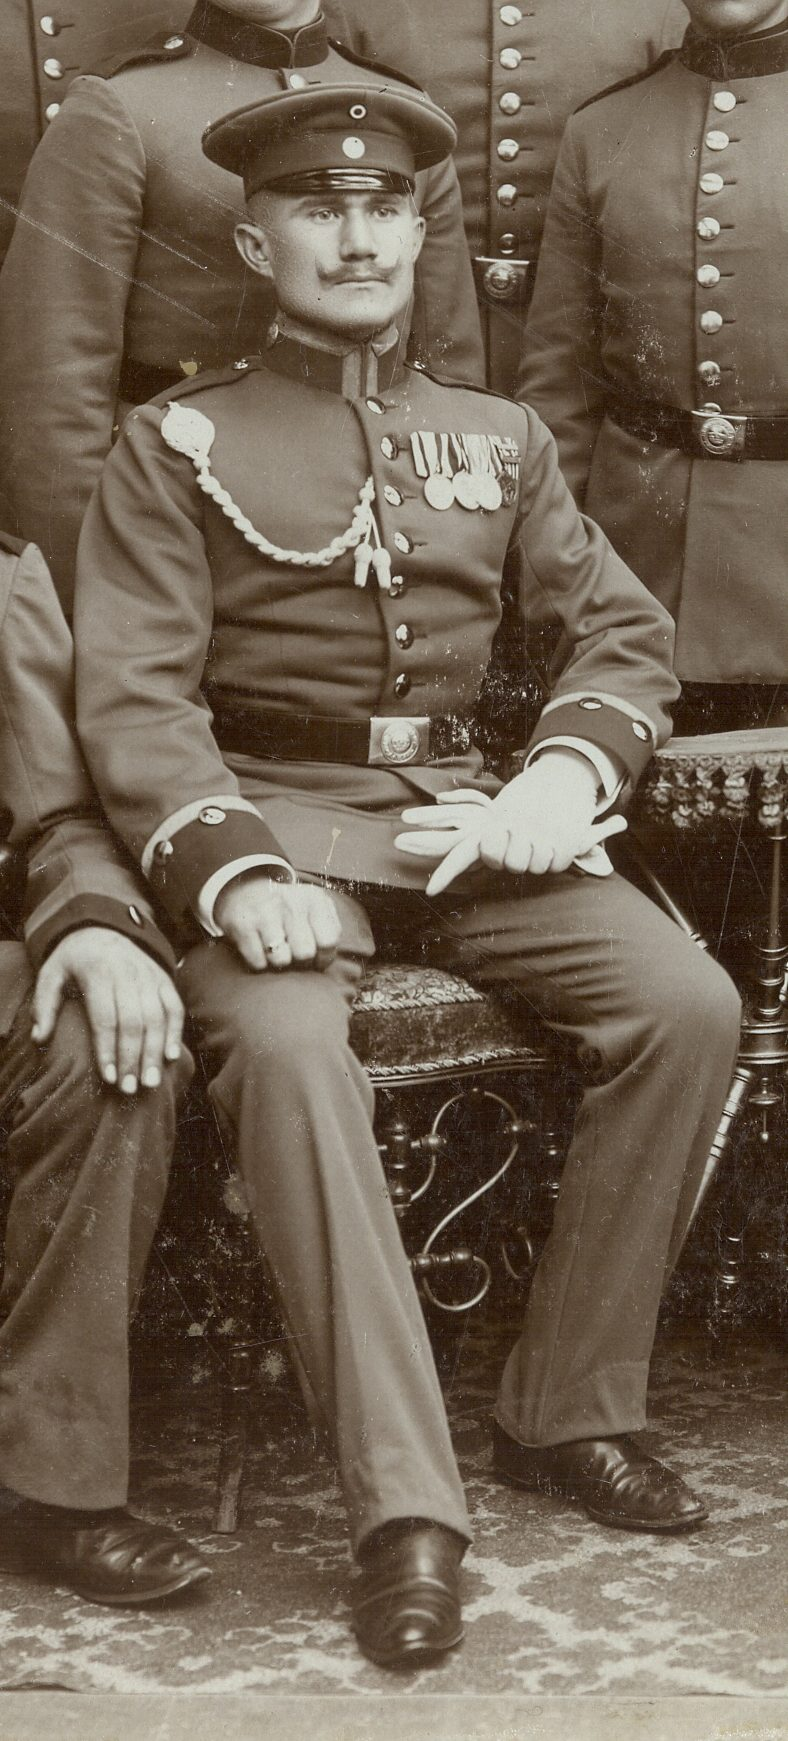 Figure 2: Detail featuring Non-Commissioned Officer